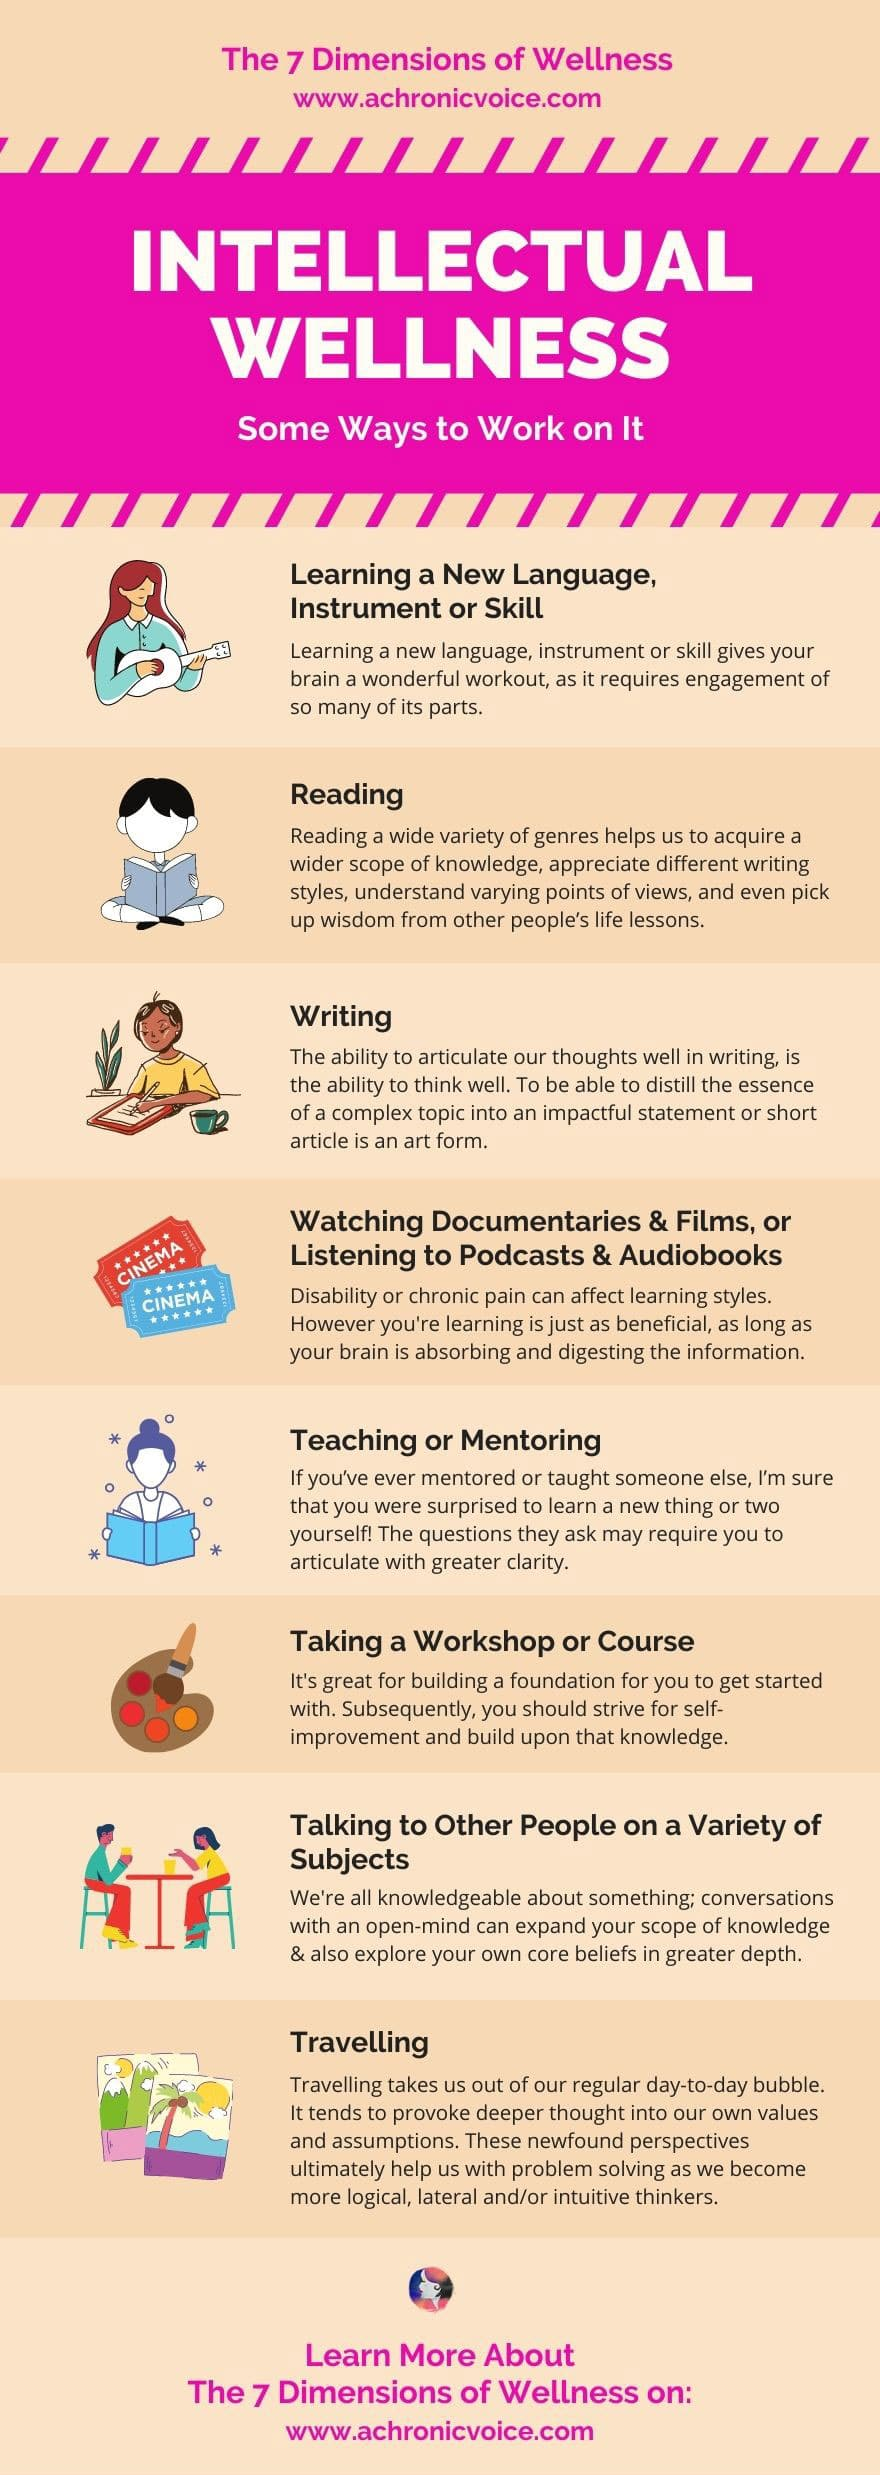 Infographic - Some Ways to Work on Our Intellectual Wellness